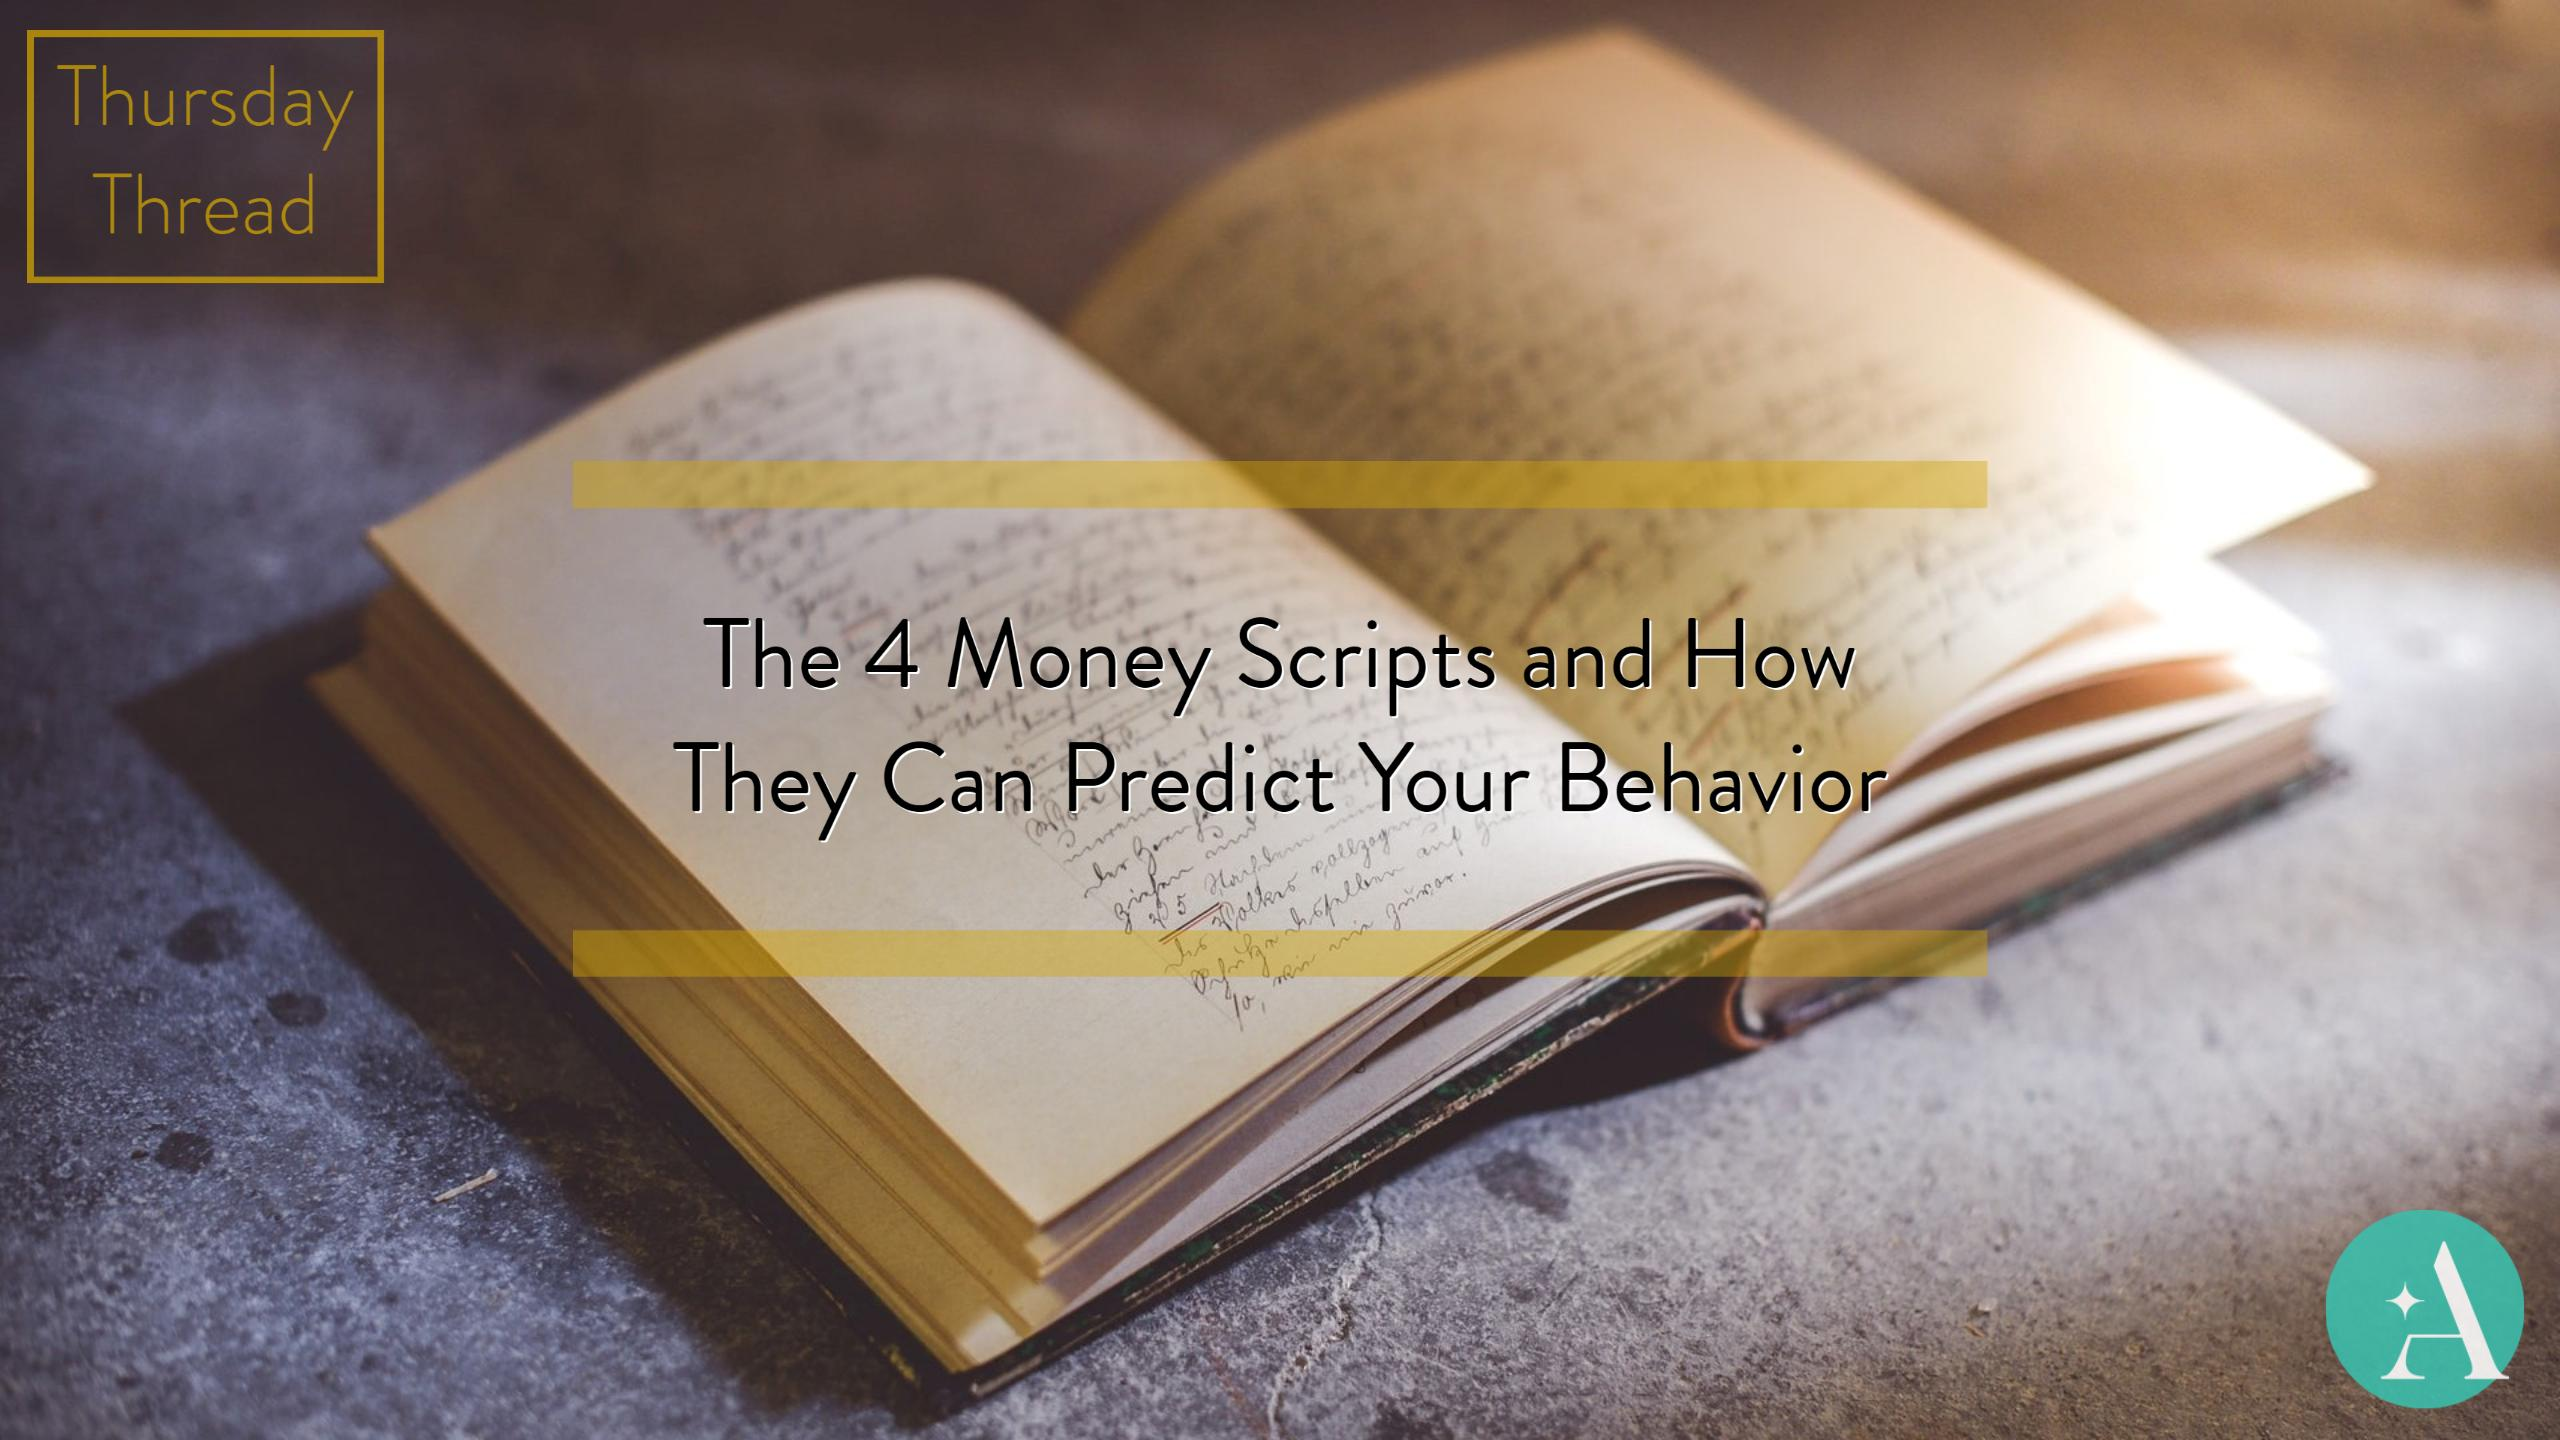 Thursday Thread: The 4 Money Scripts and How They Can Predict Your Behavior Thumbnail